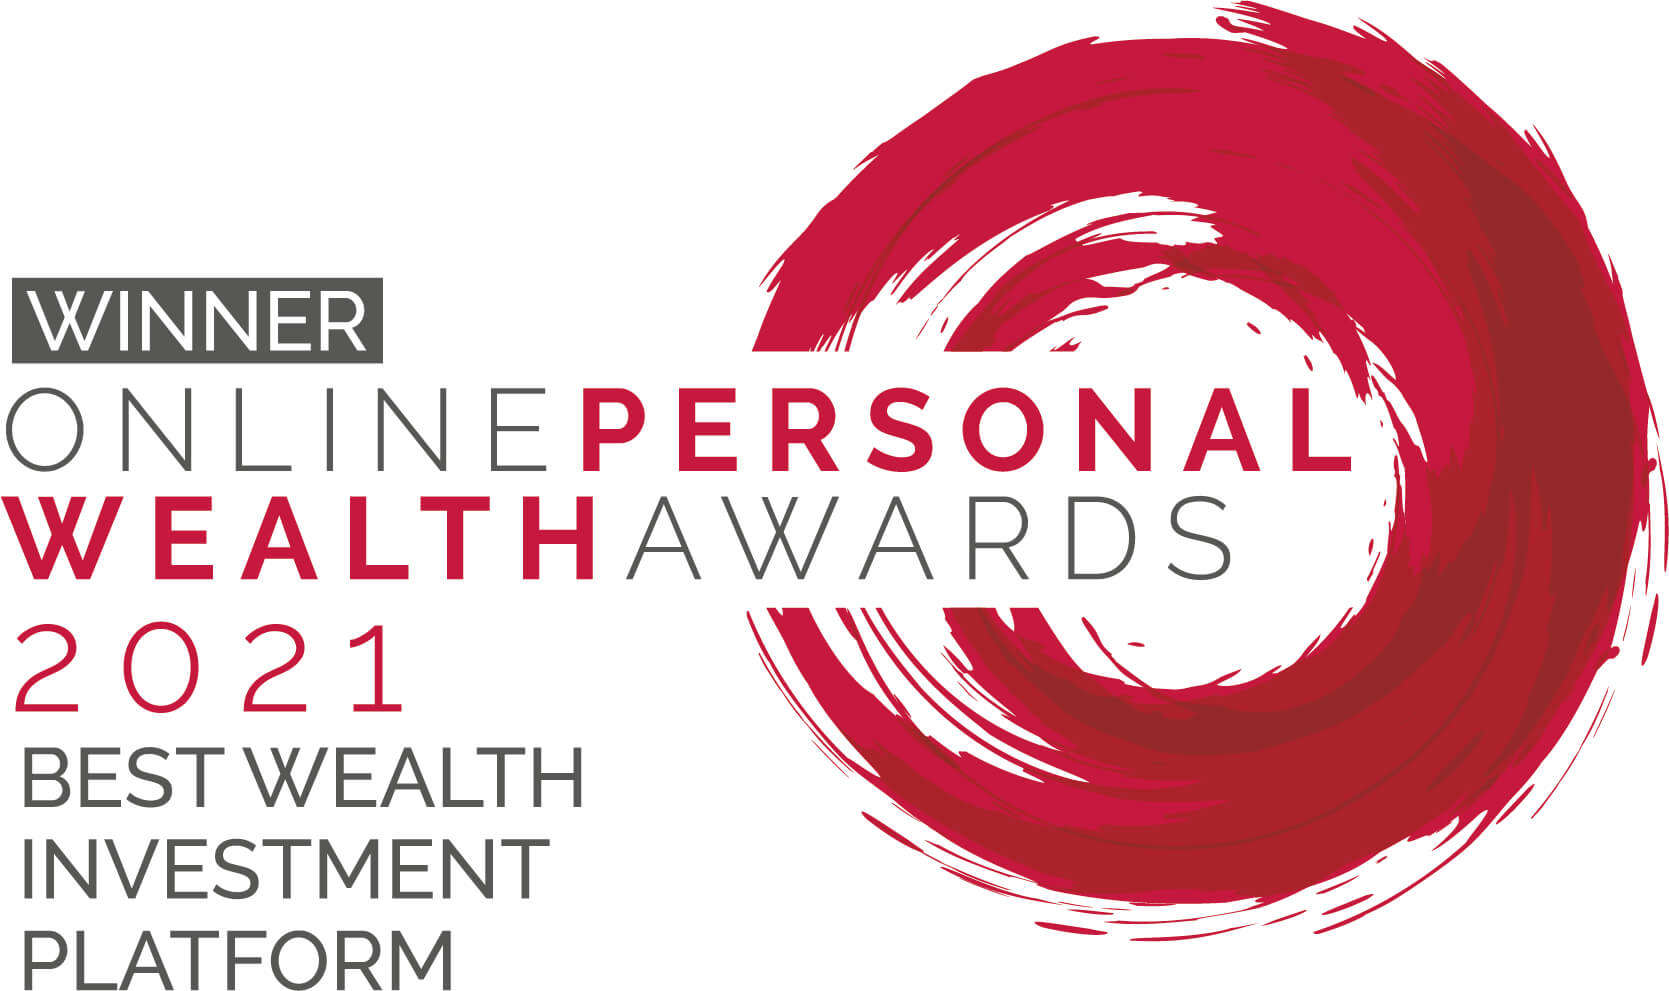 ONLINE PERSONAL WEALTH AWARDS 2021